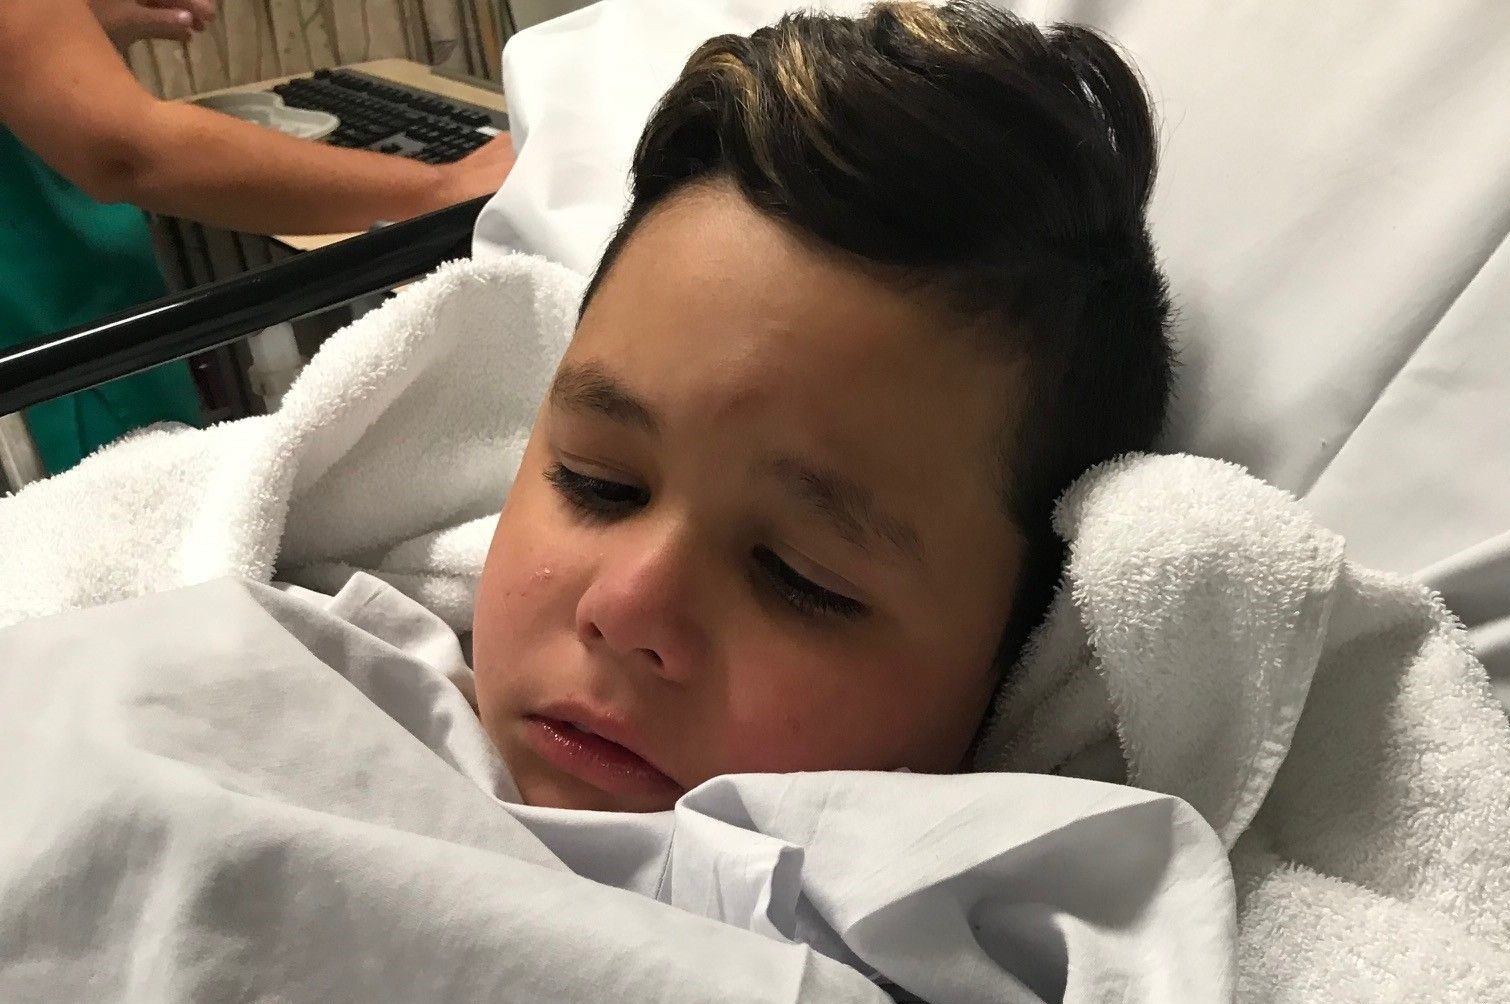 Cem awaits surgery in his hospital bed